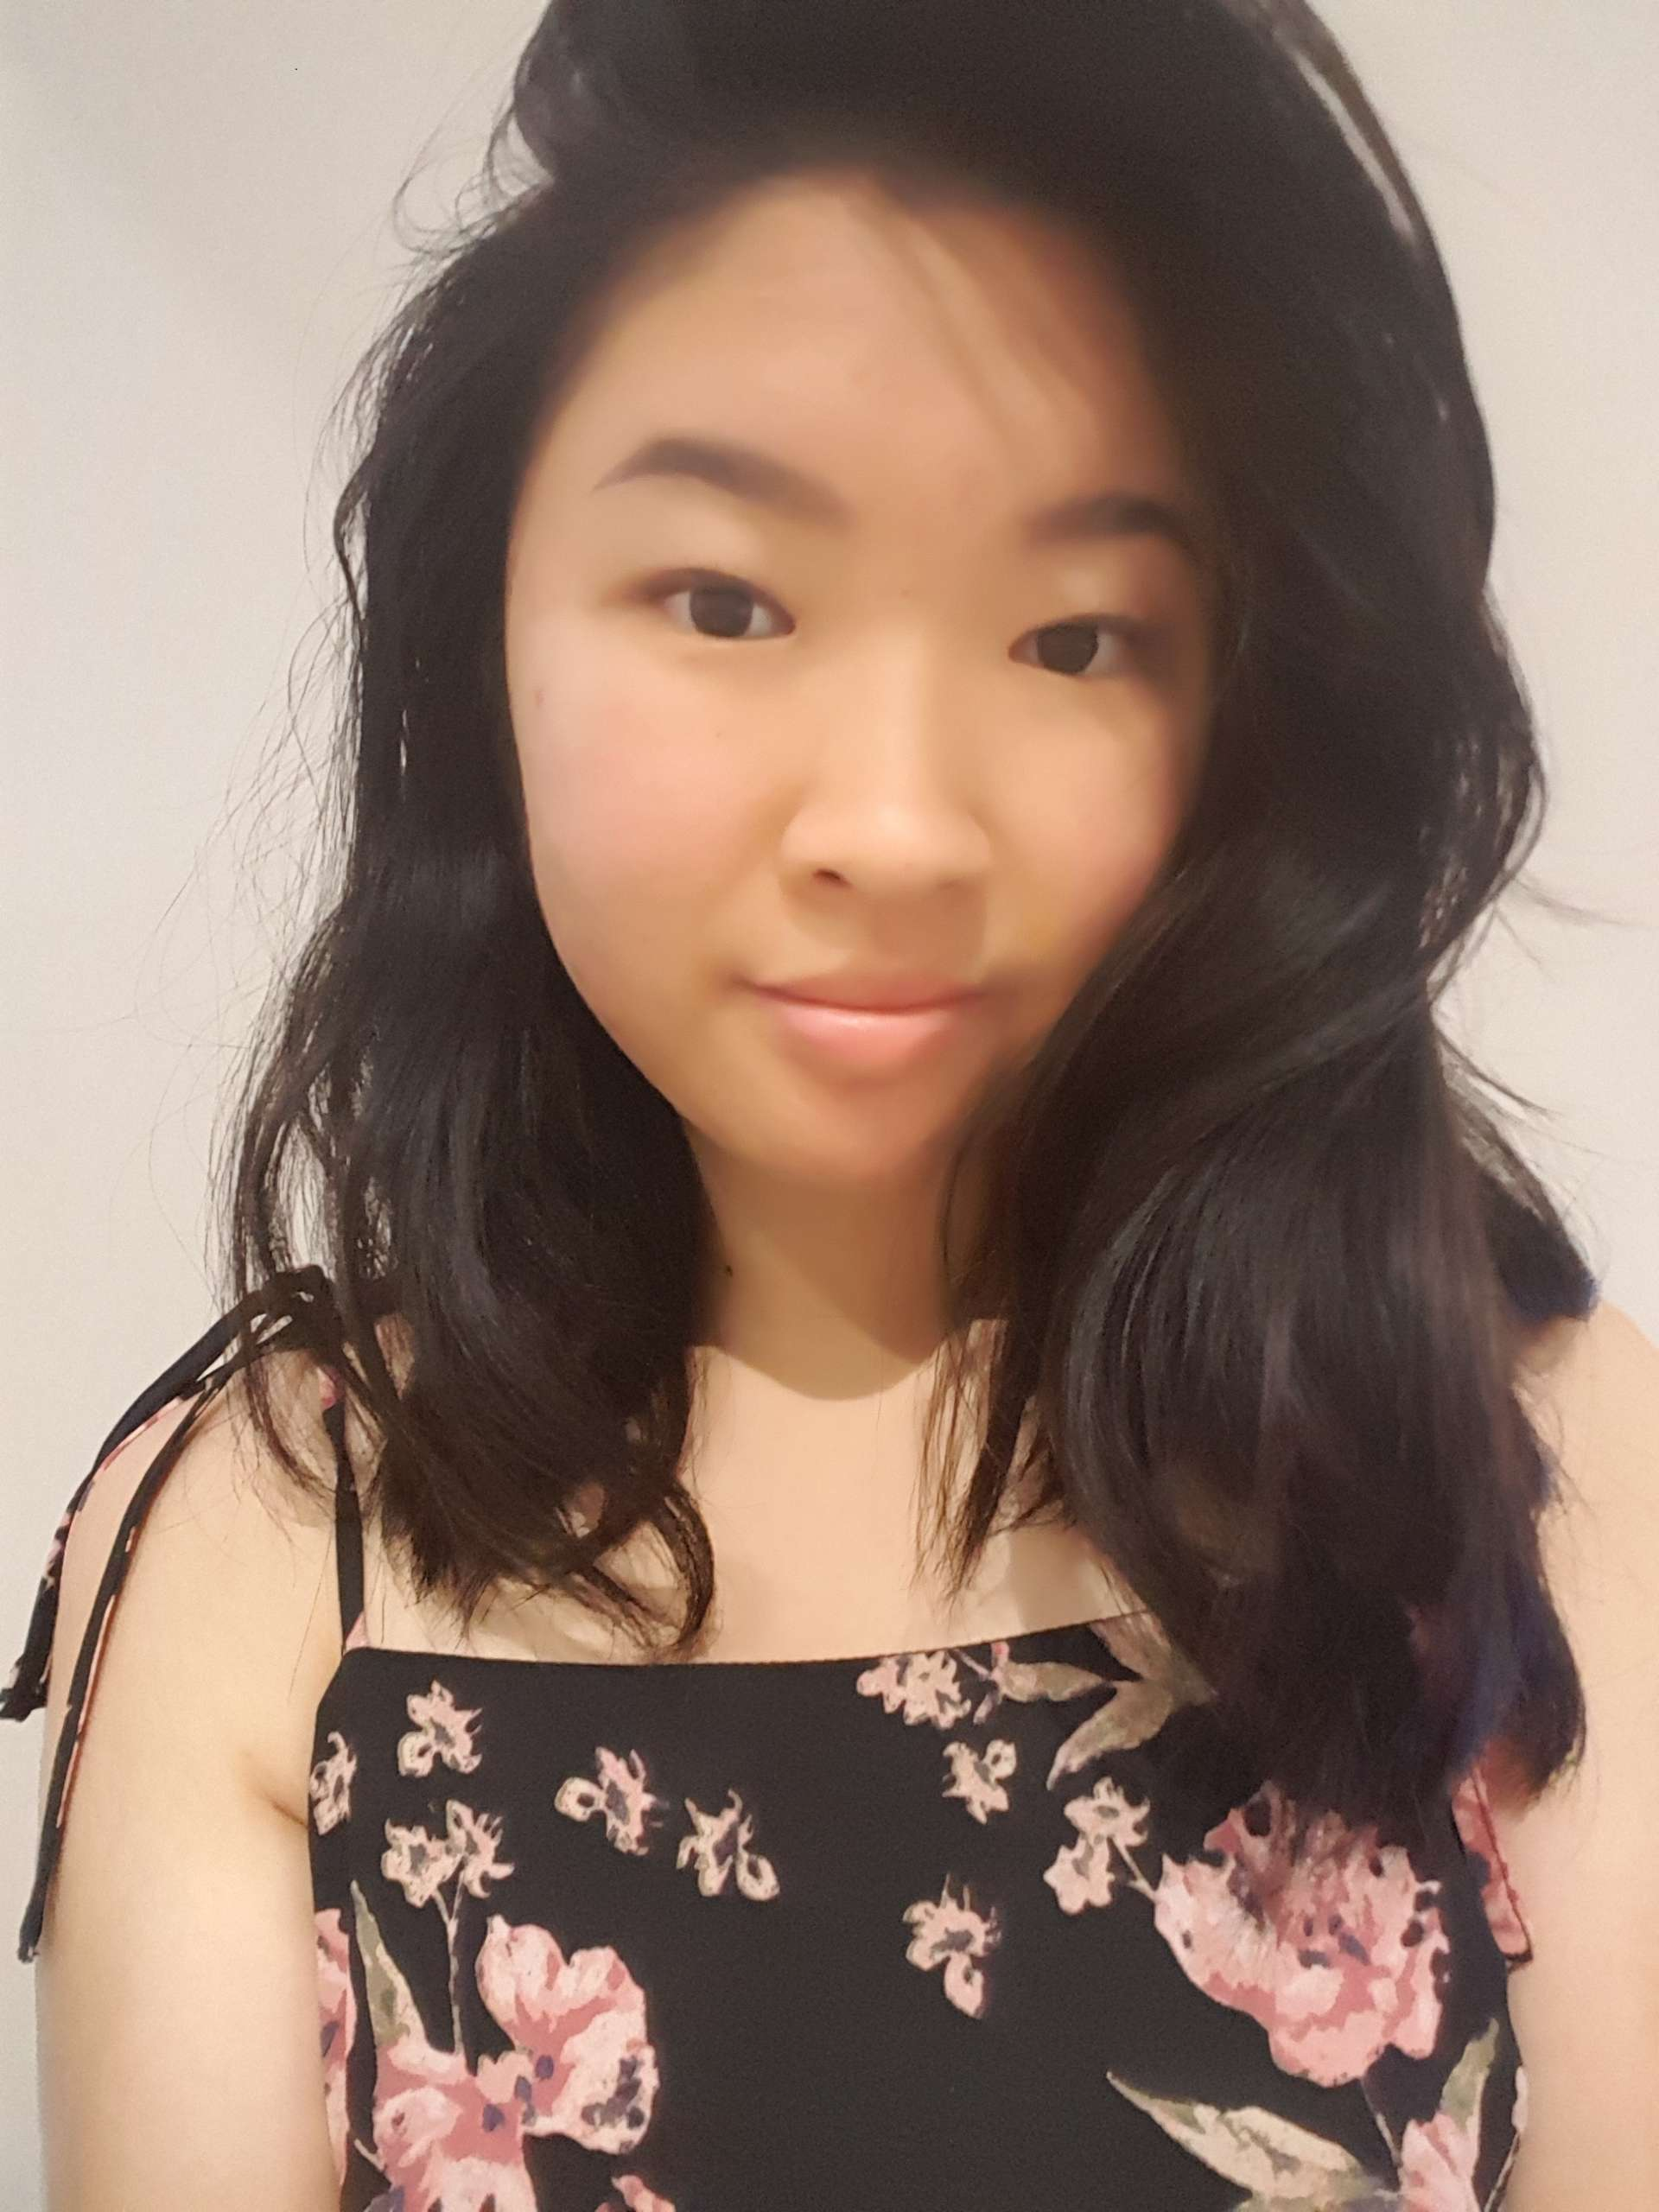 Writer, Christy Tan, weaing a black top with pink and green flowers. They are facing front on with long dark wavy hair parted on the right hand side.